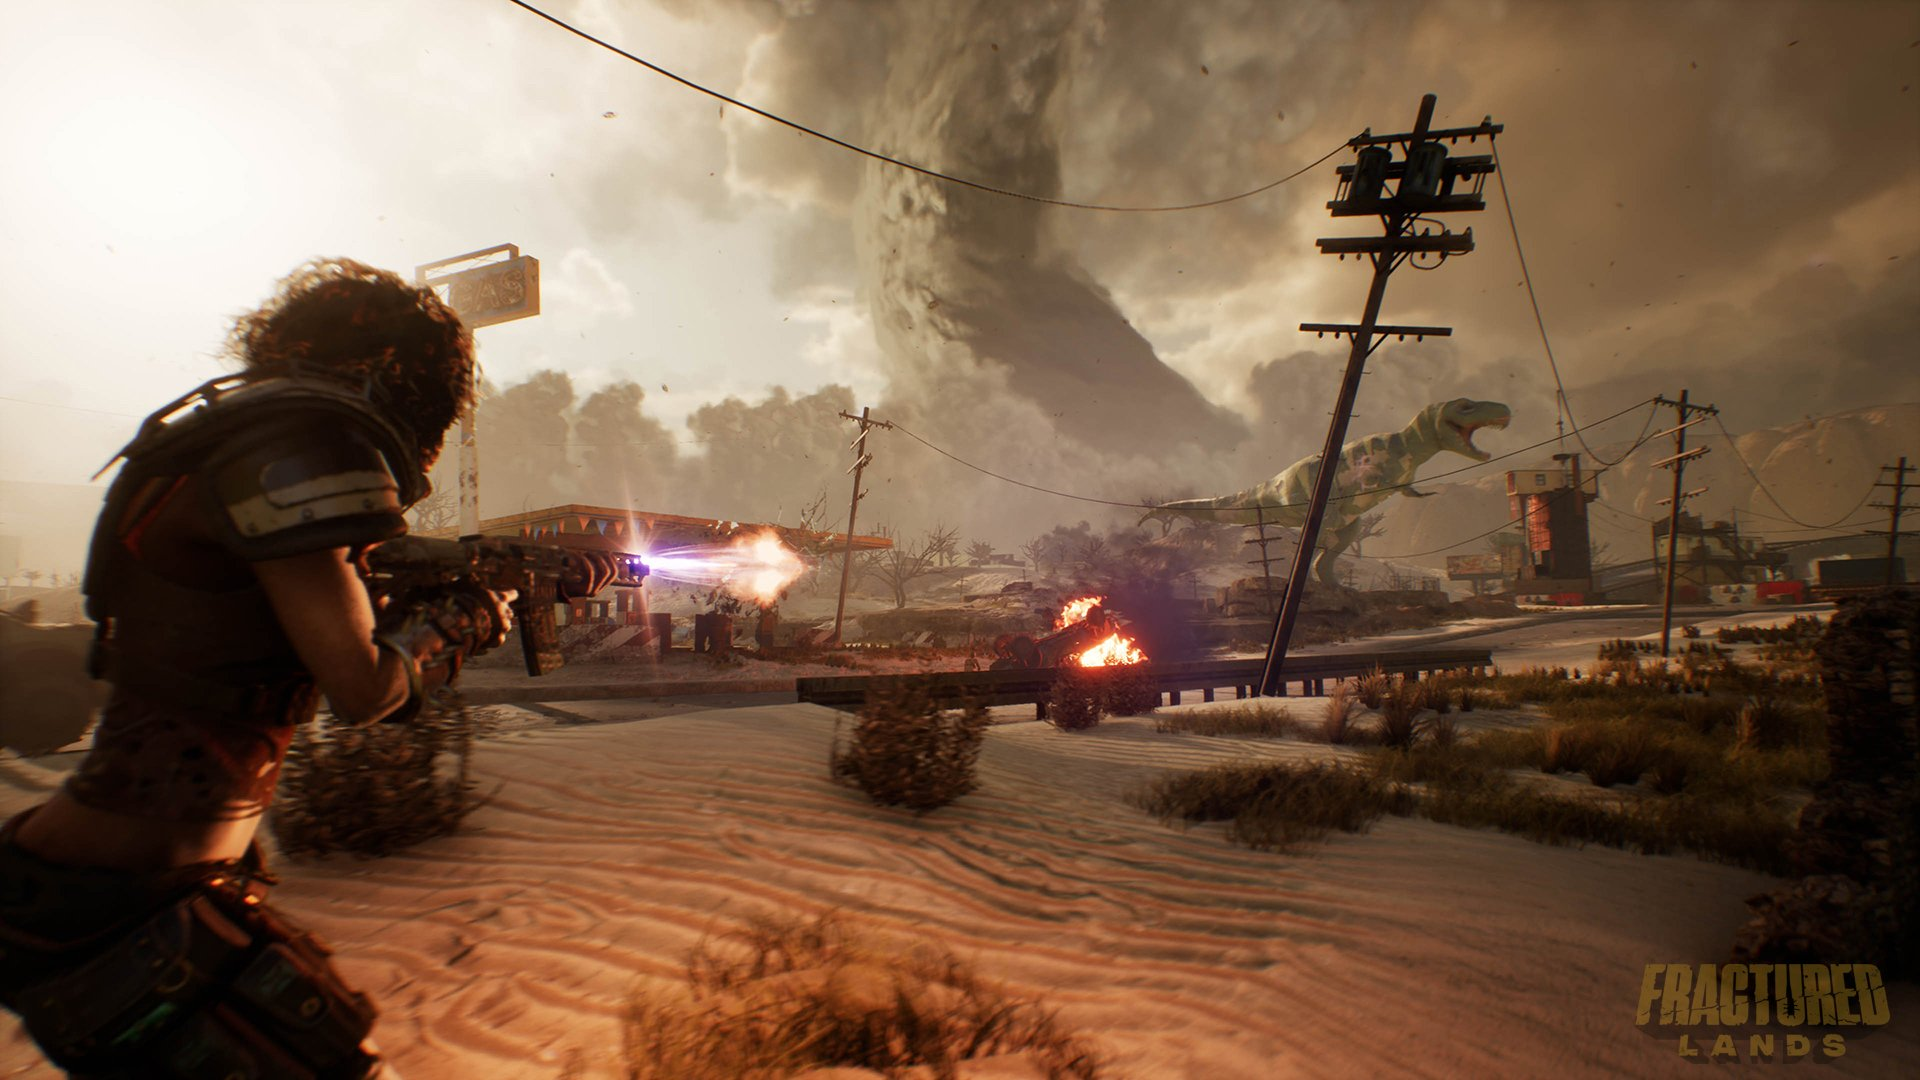 We have 500 closed beta keys for Fractured Lands to give to you screenshot